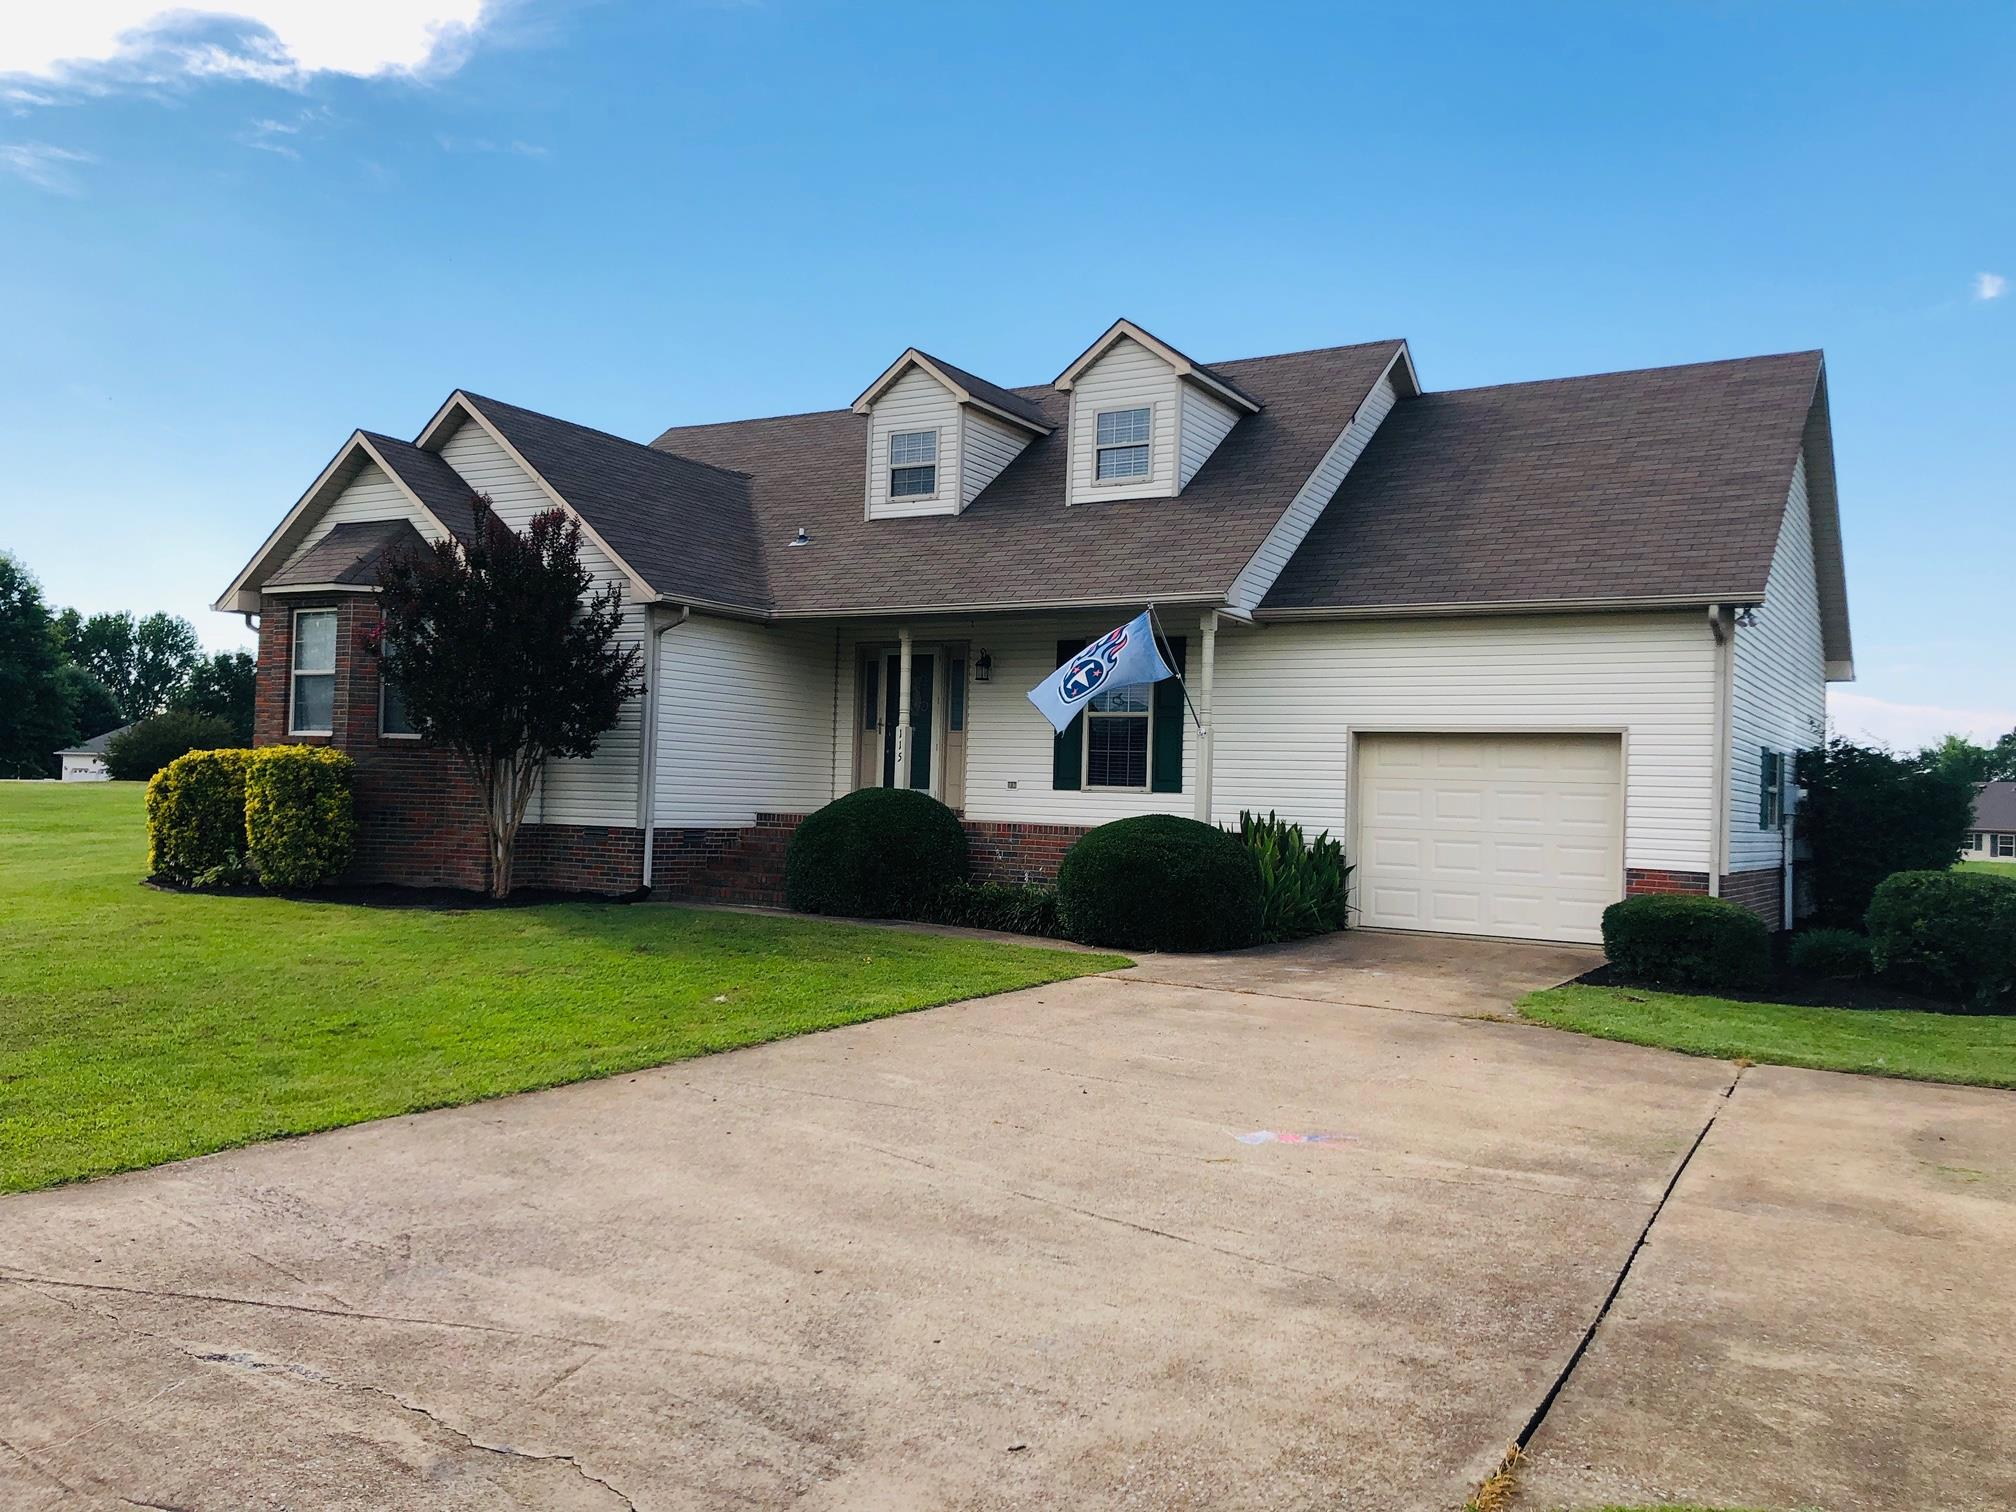 115 Monument Cir, Summertown, TN 38483 - Summertown, TN real estate listing